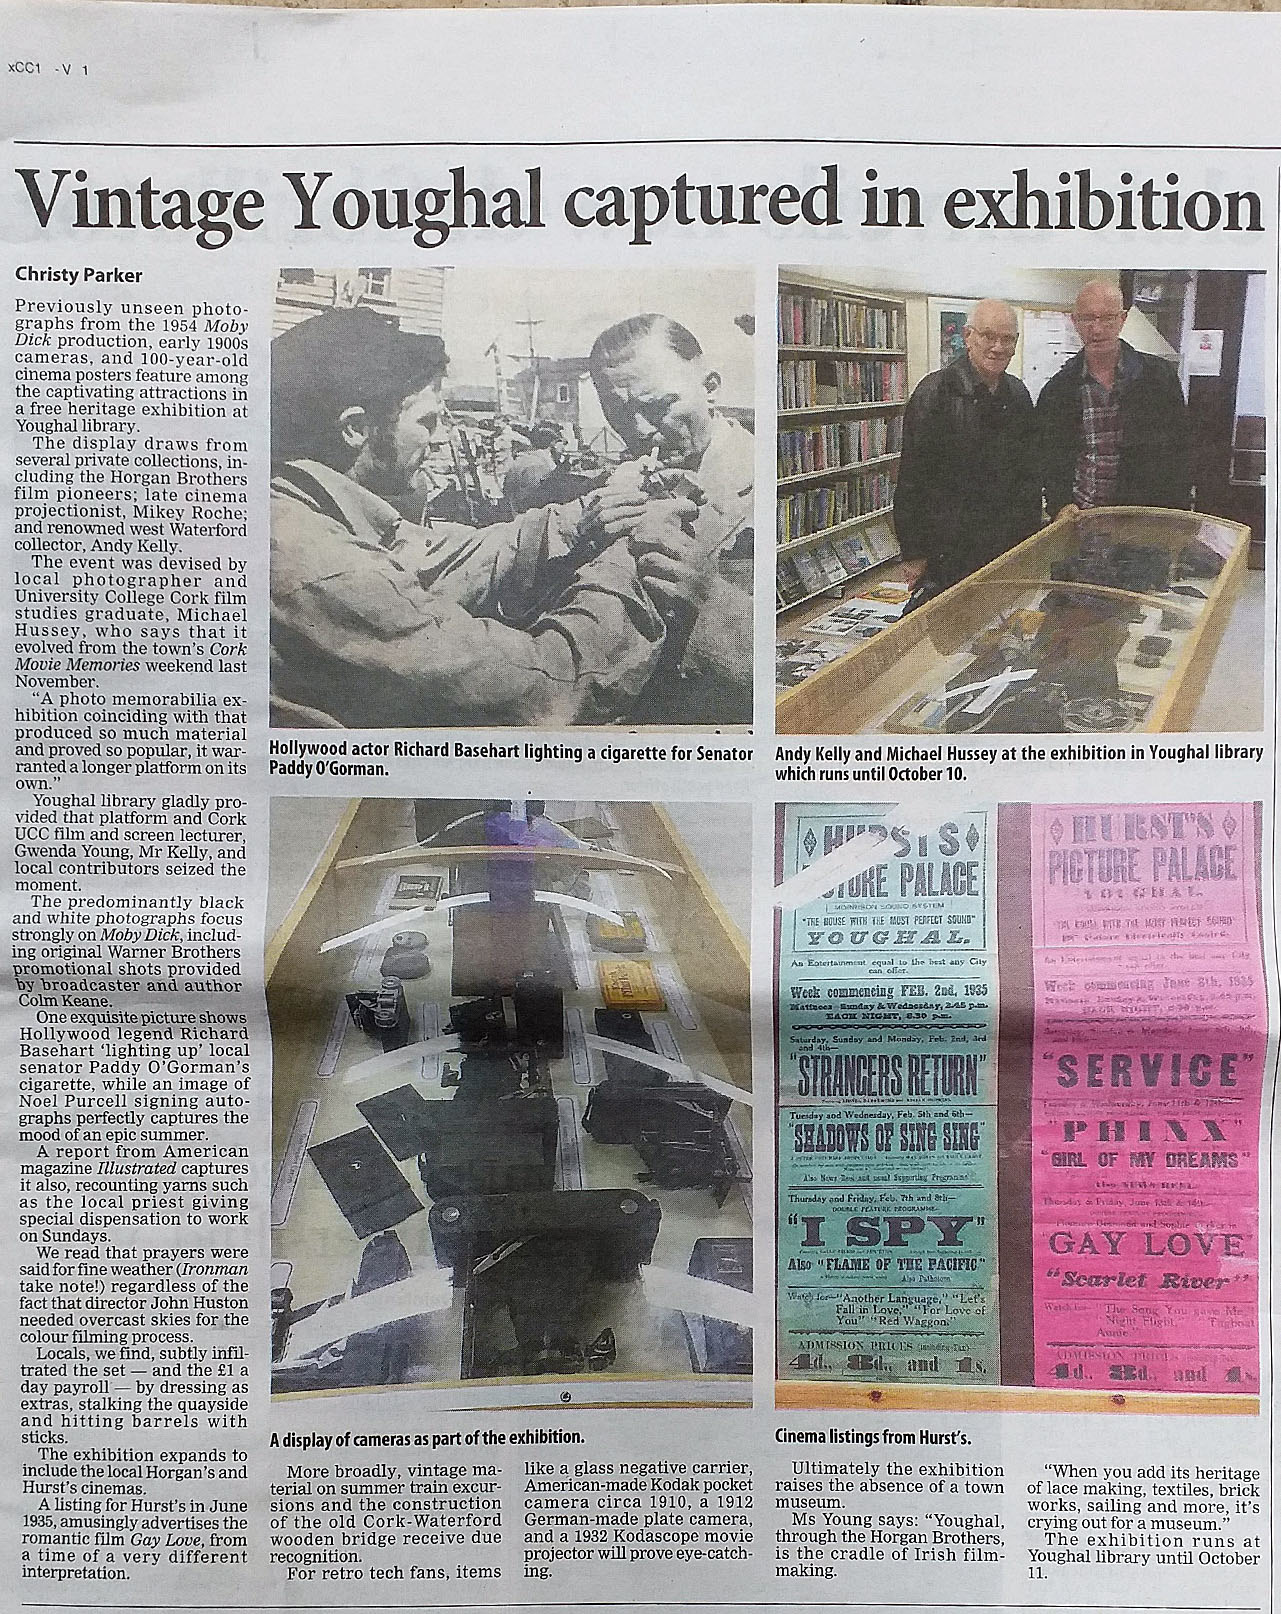 New exhibition on cinema and cinema-going in Youghal, curated by Mr. Michael Hussey. Youghal Library. Sep 20th - Oct 11th.